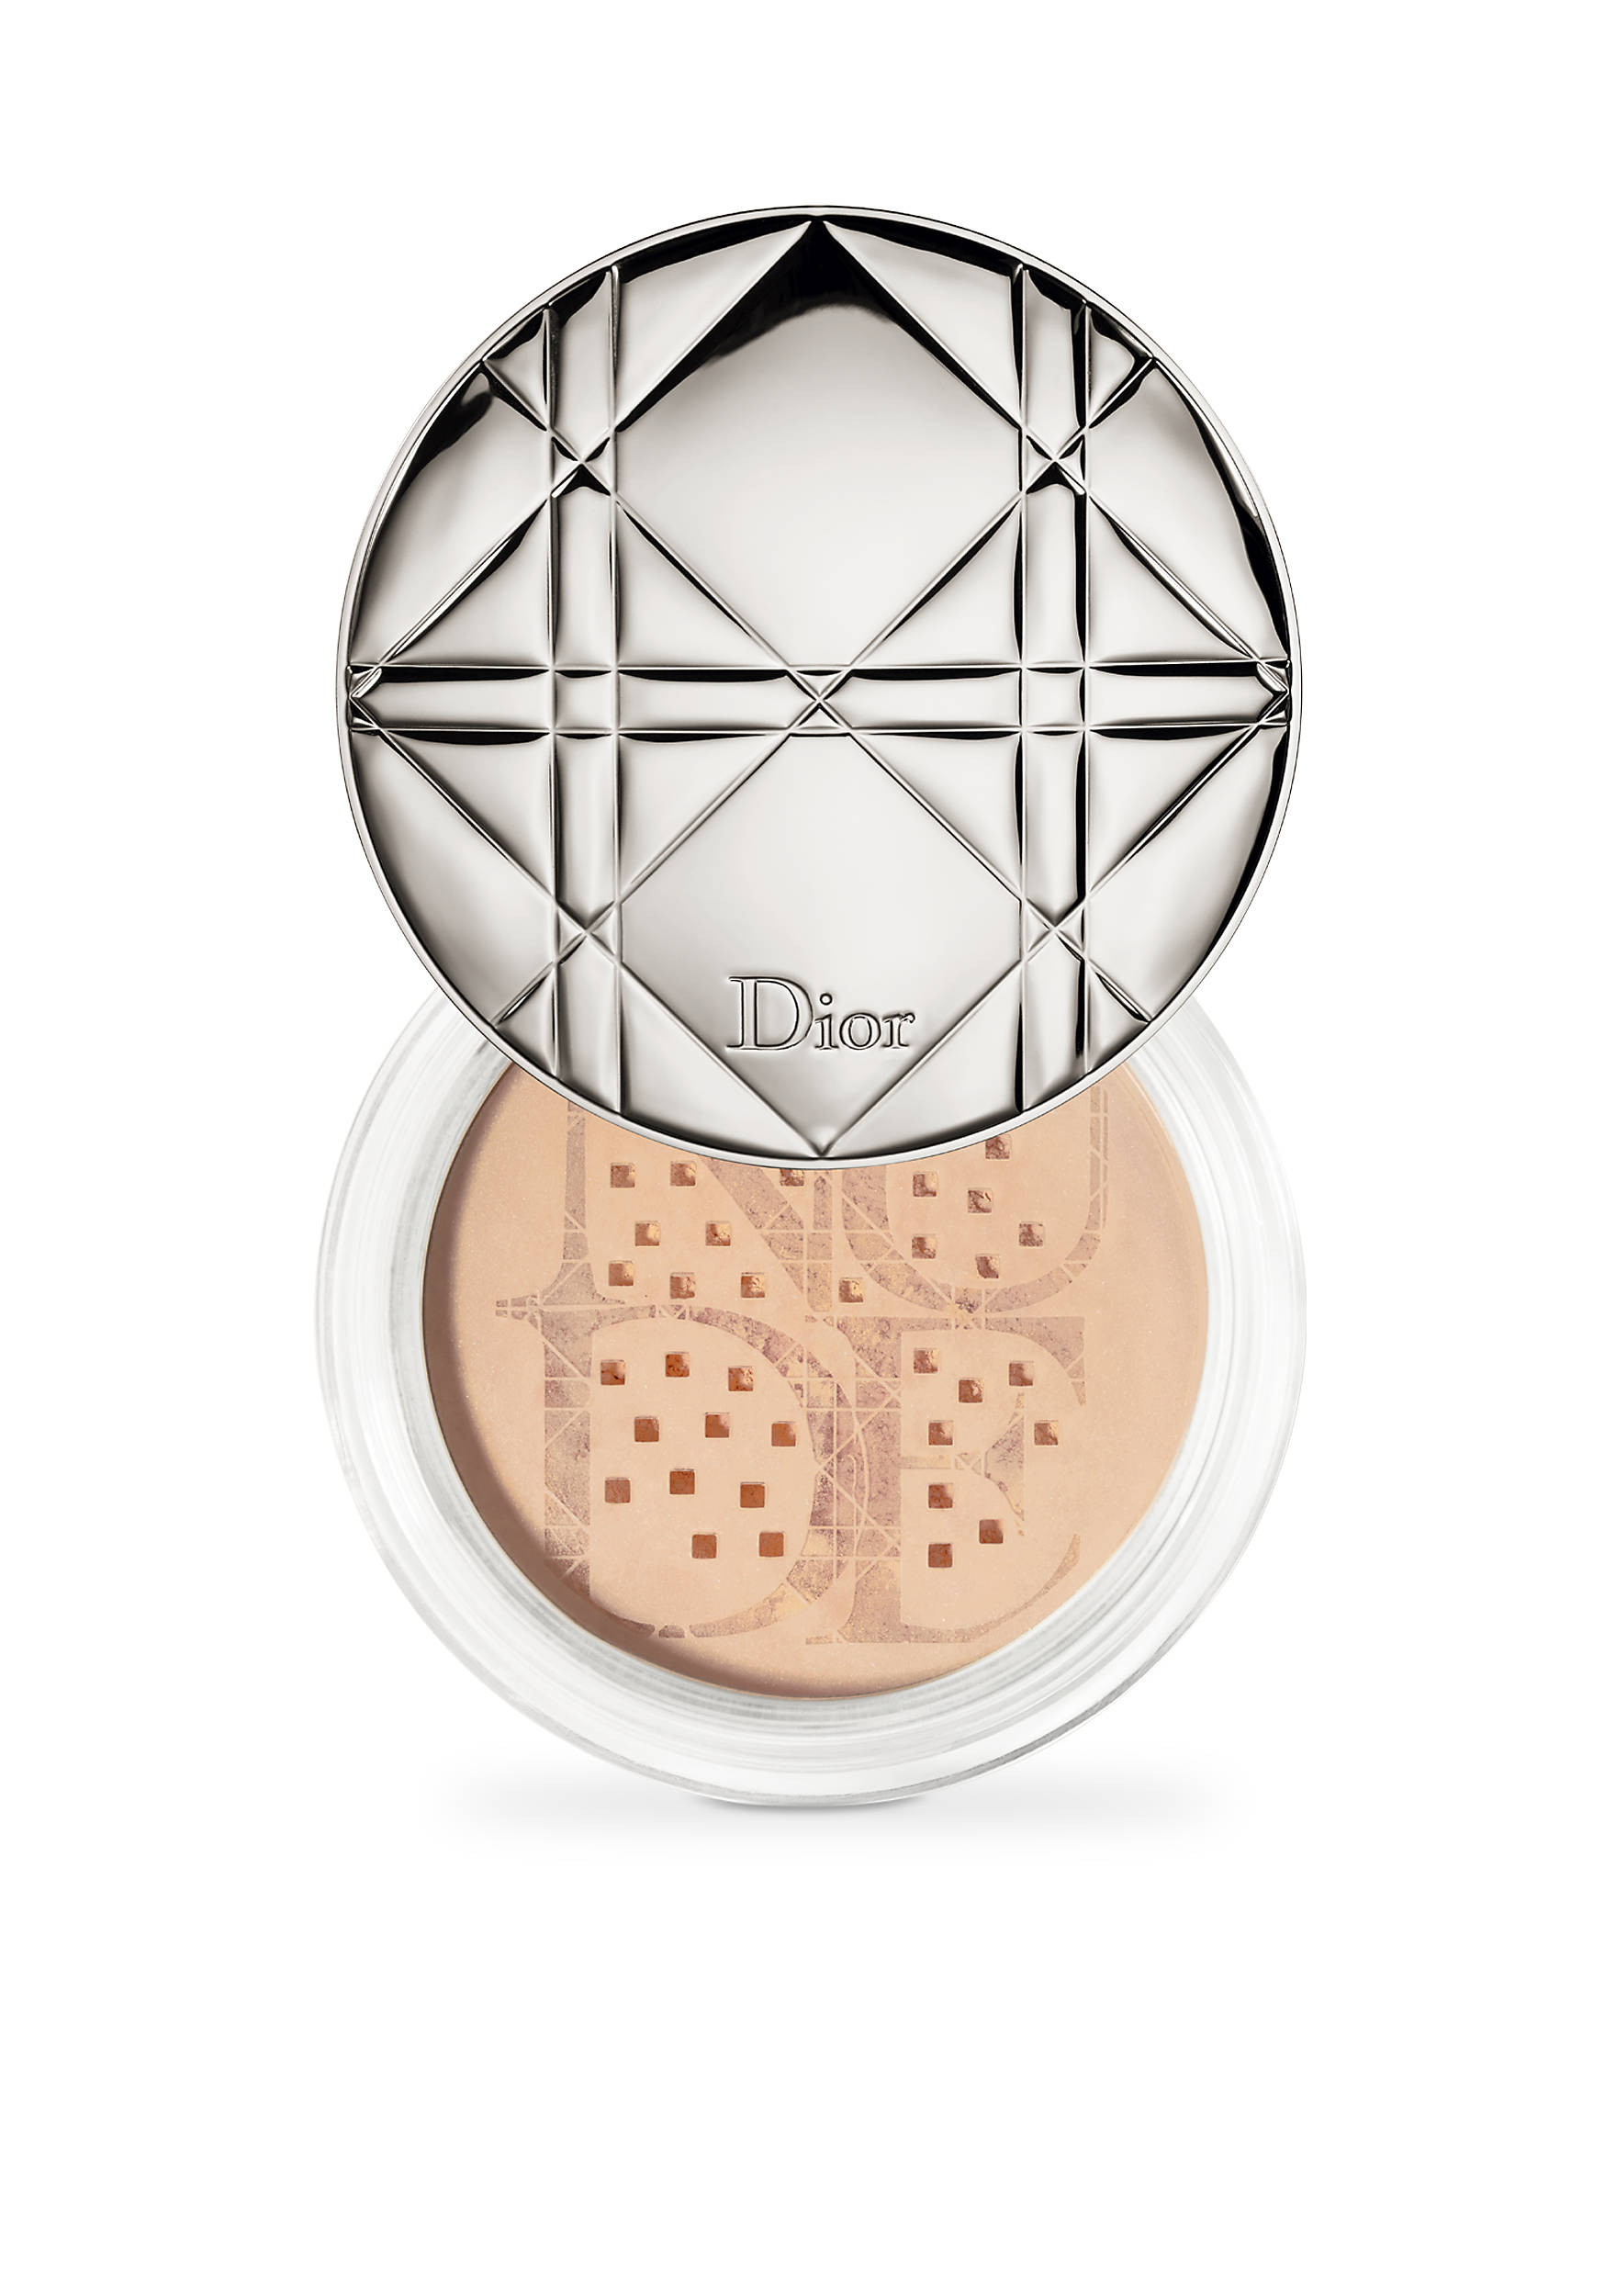 Diorskin Forever & Ever Control Loose Powder by Dior #19